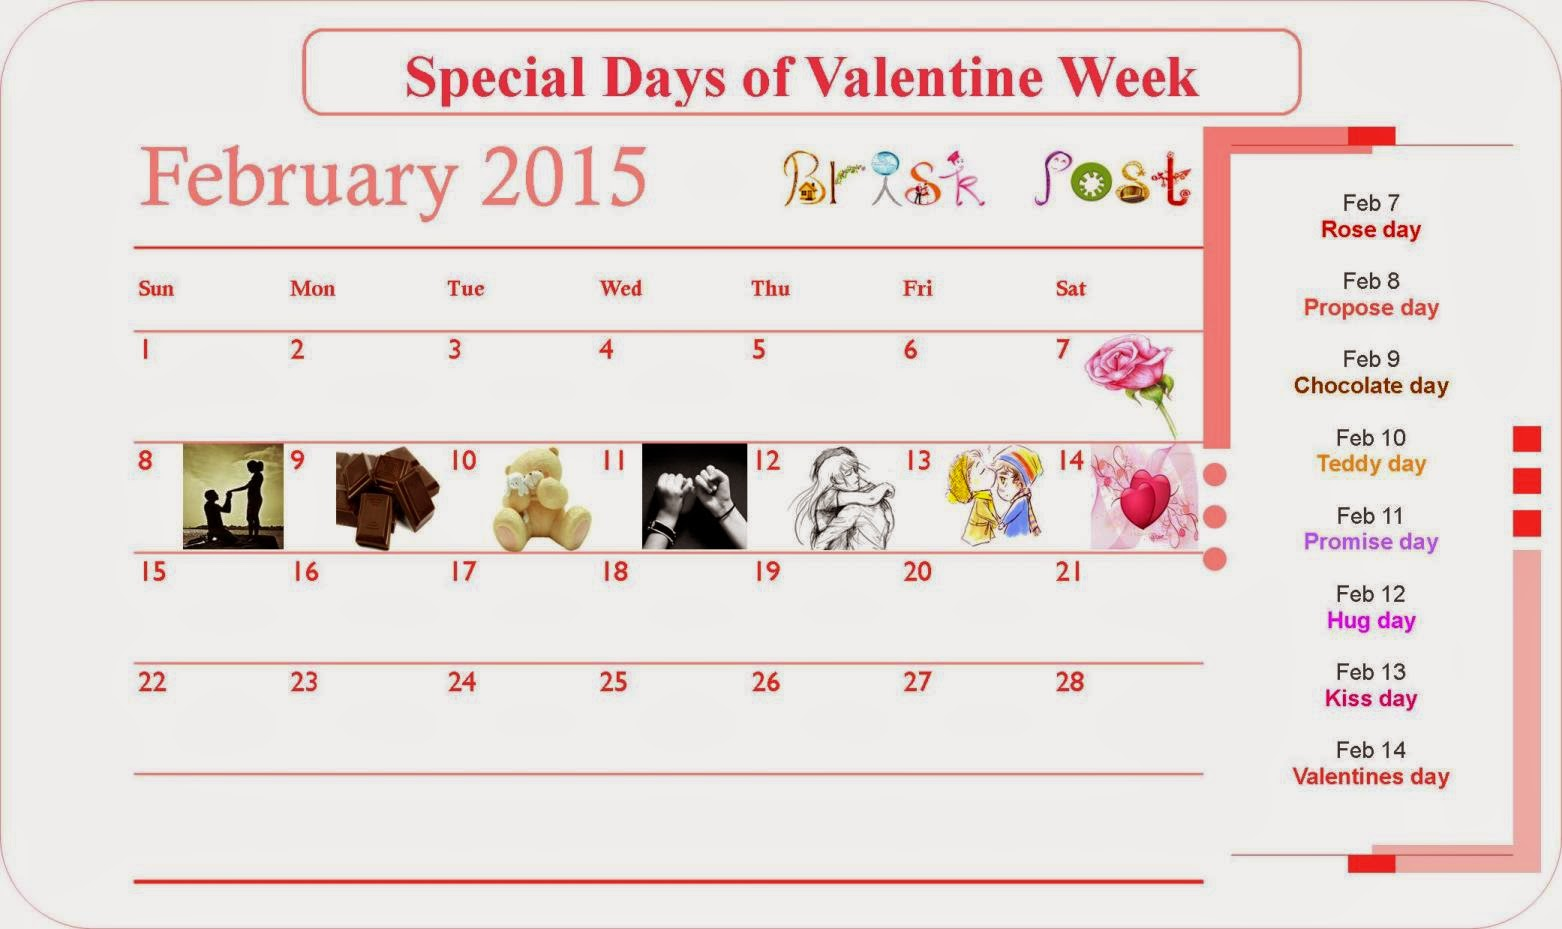 List of Seven Days of Valentine Week 2015